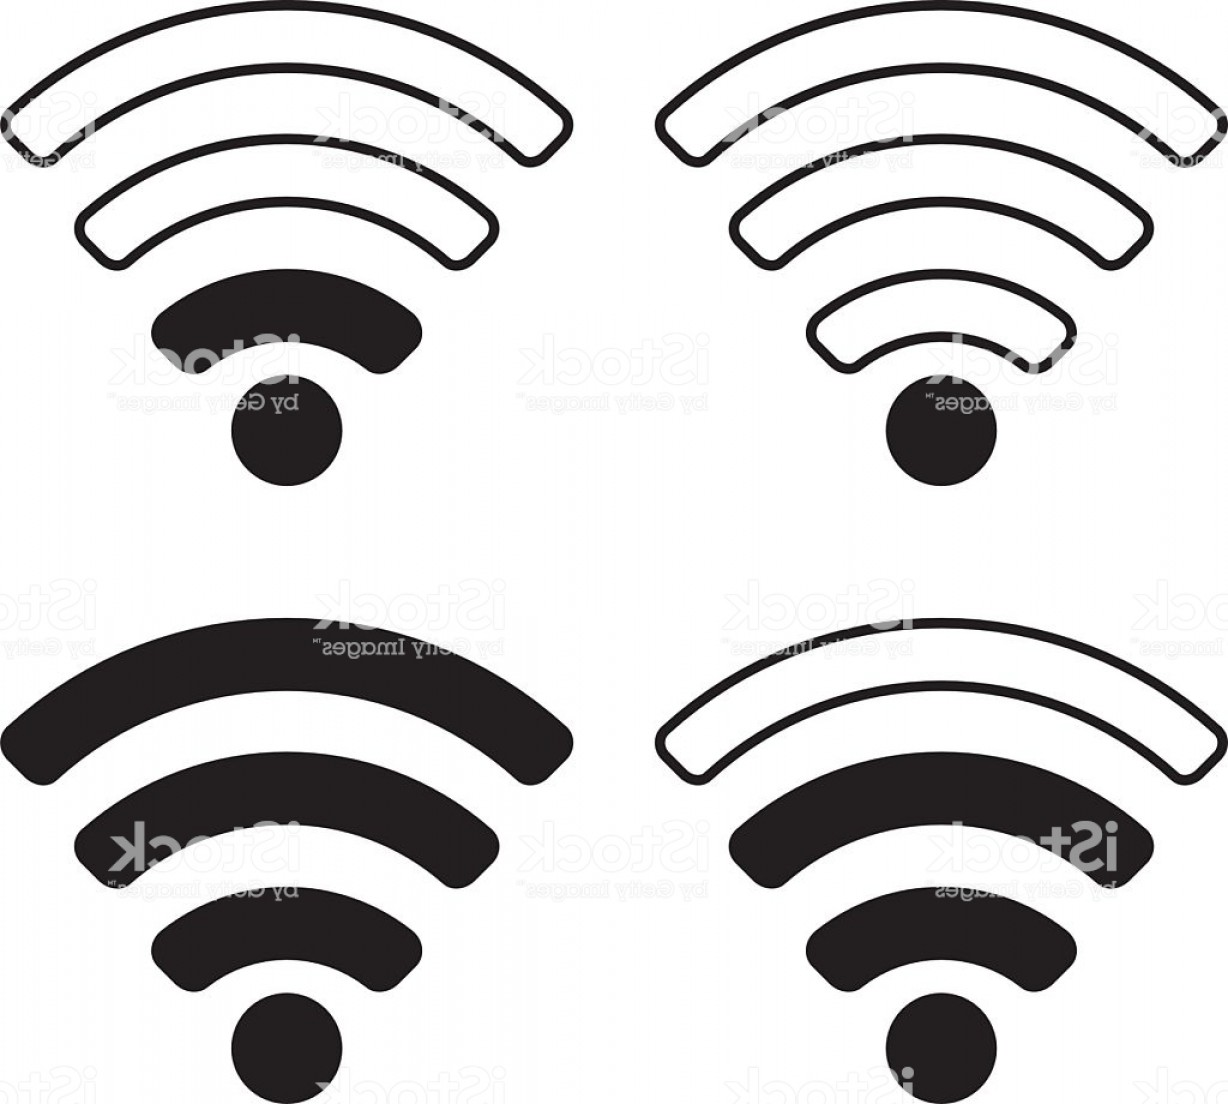 Wifi Symbol Clip Art Vector: Wifi Signal Symbol Icon Gm